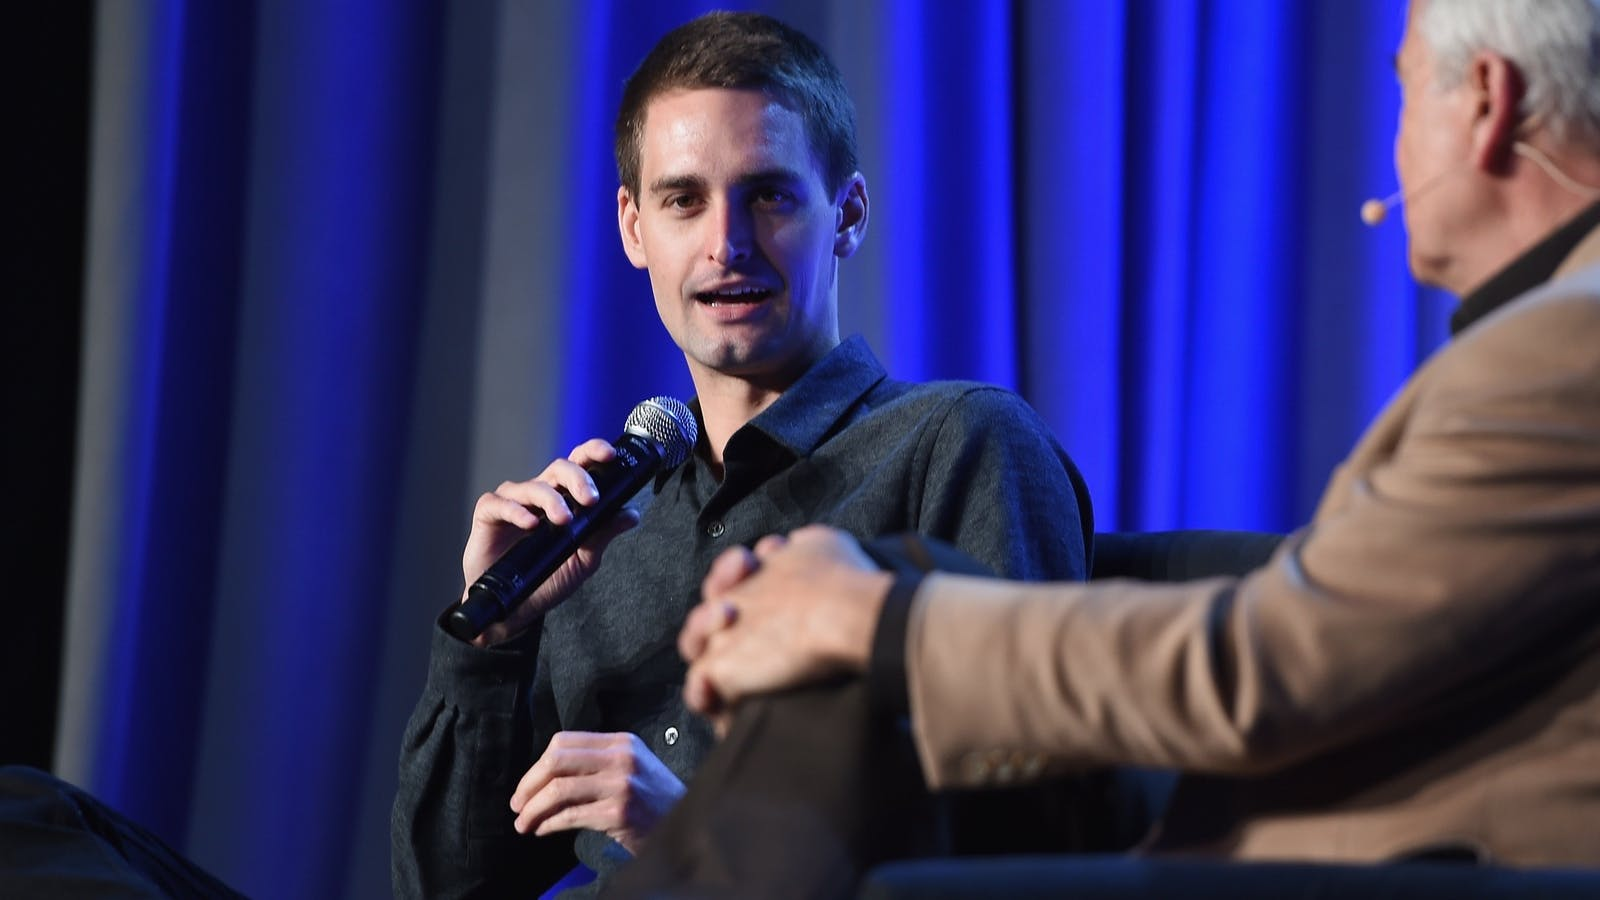 Snapchat CEO Evan Spiegel. Photo by Larry Busacca/Getty Images.